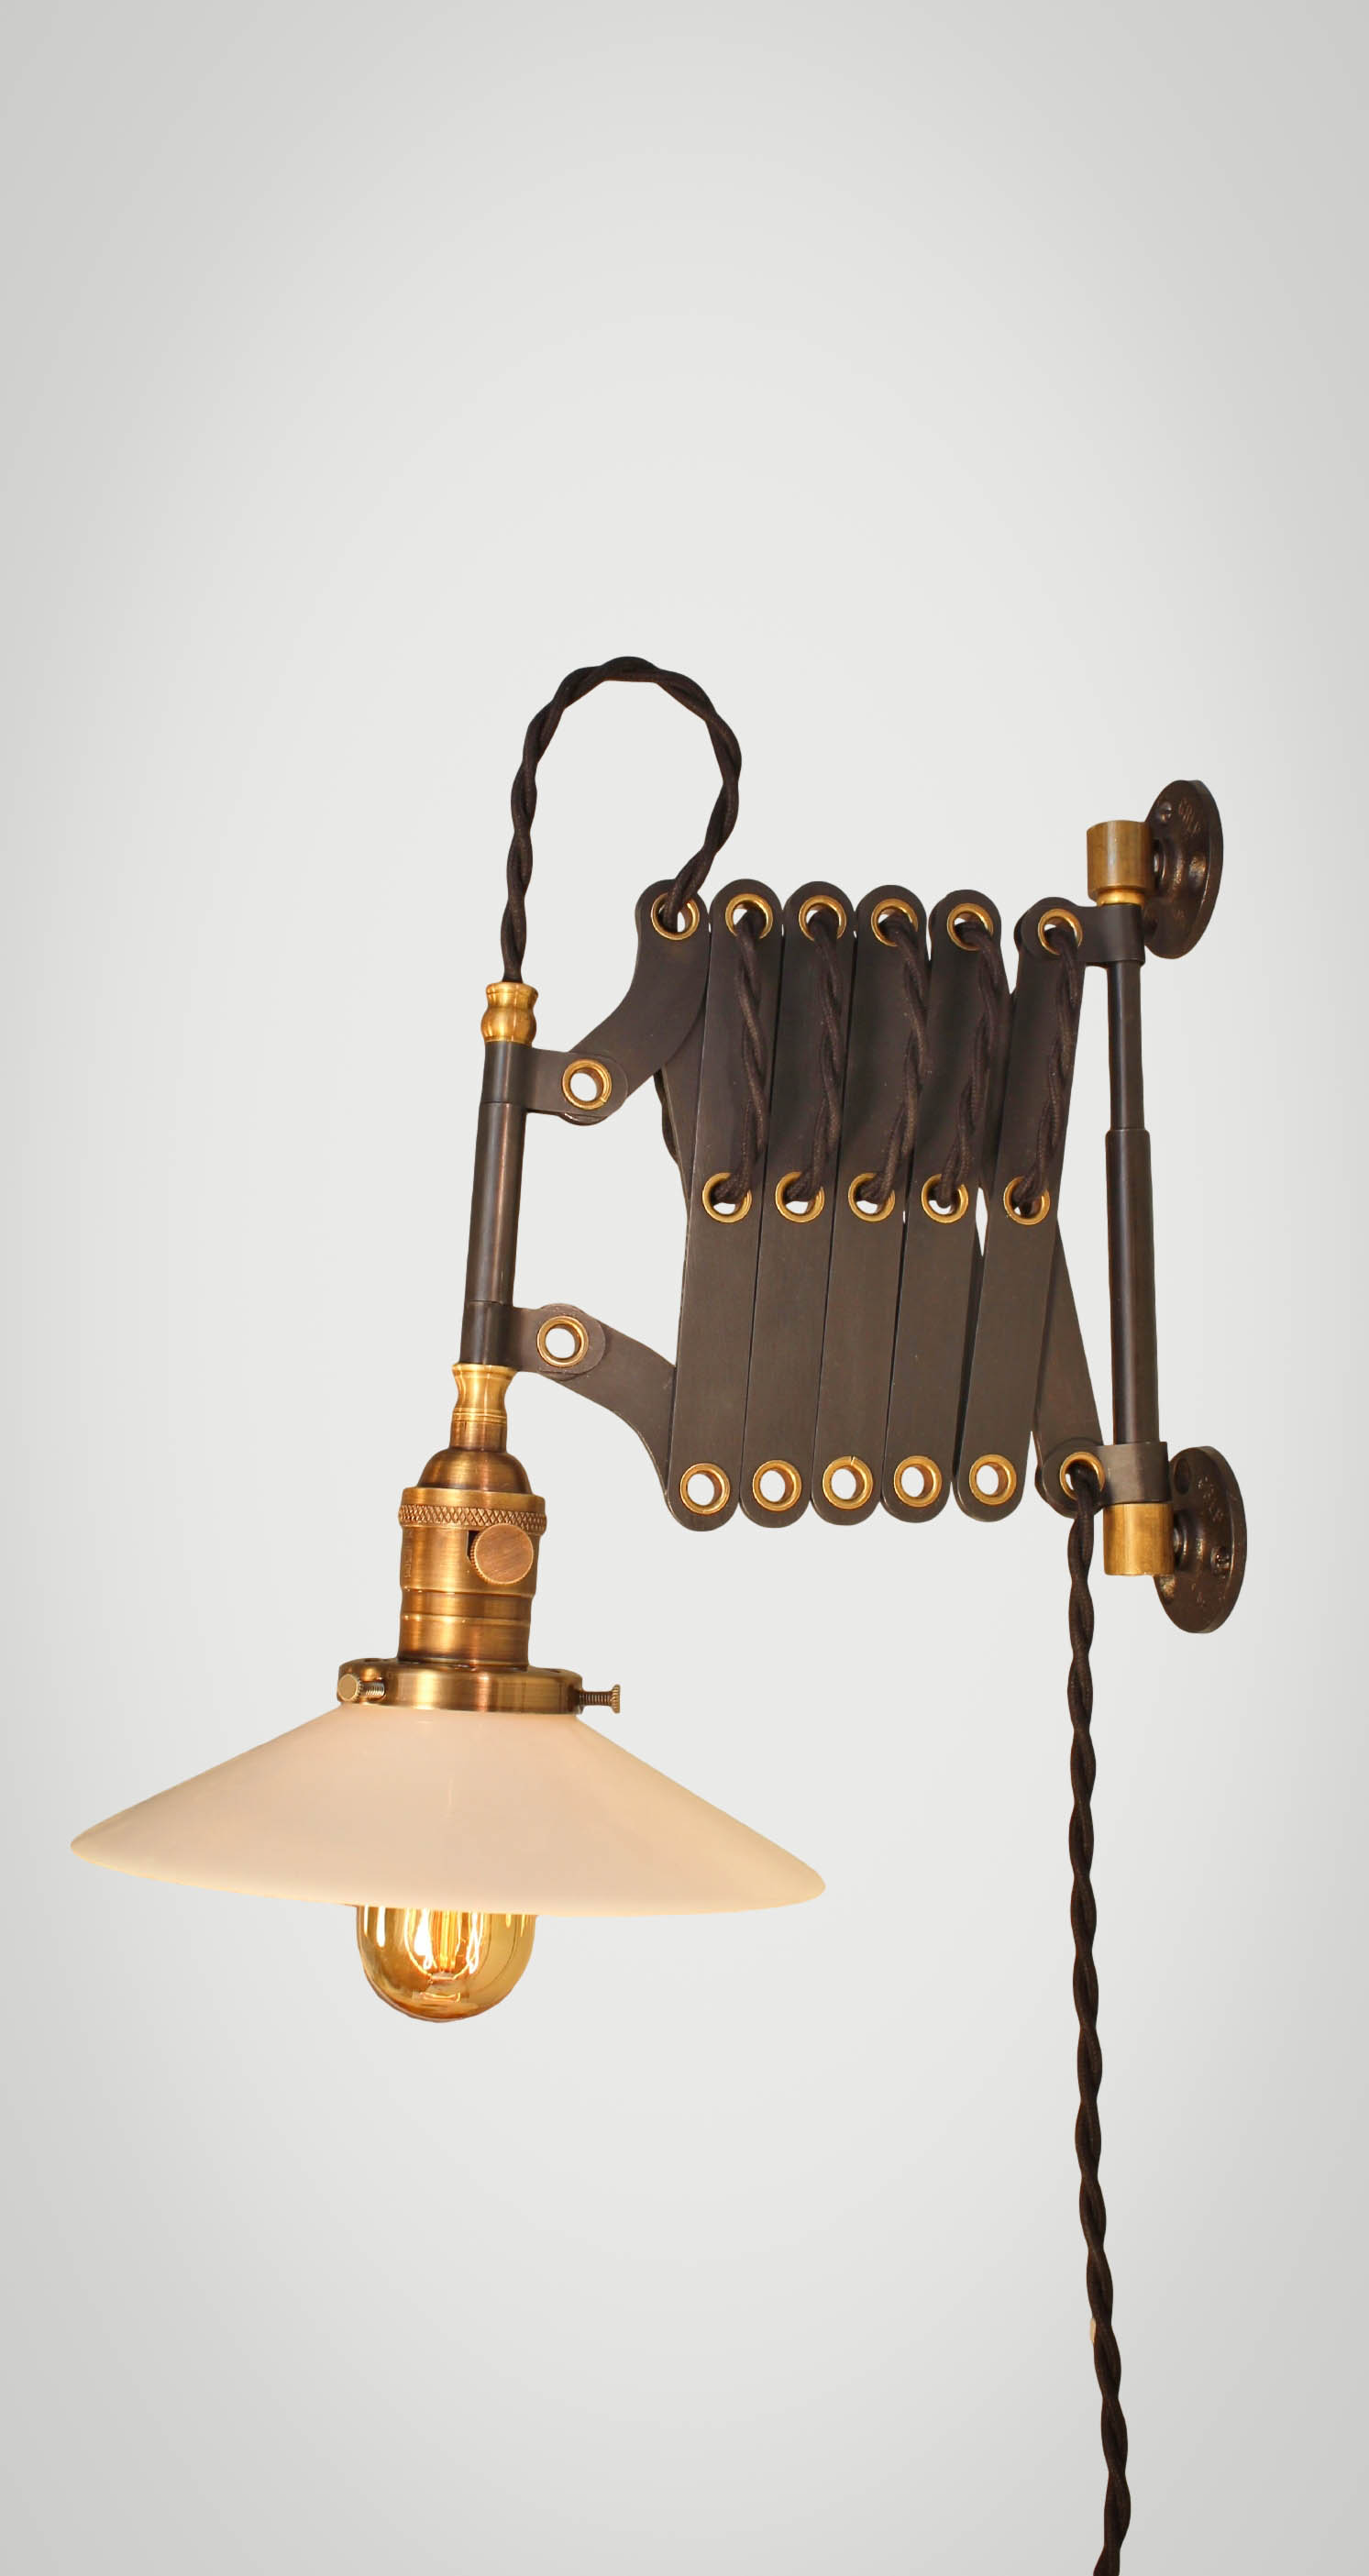 Wall Mounted Accordion Lamps : Vintage Industrial Scissor Light - Expandable Accordion Swing Arm Wall Sconce Steampunk Lamp ...